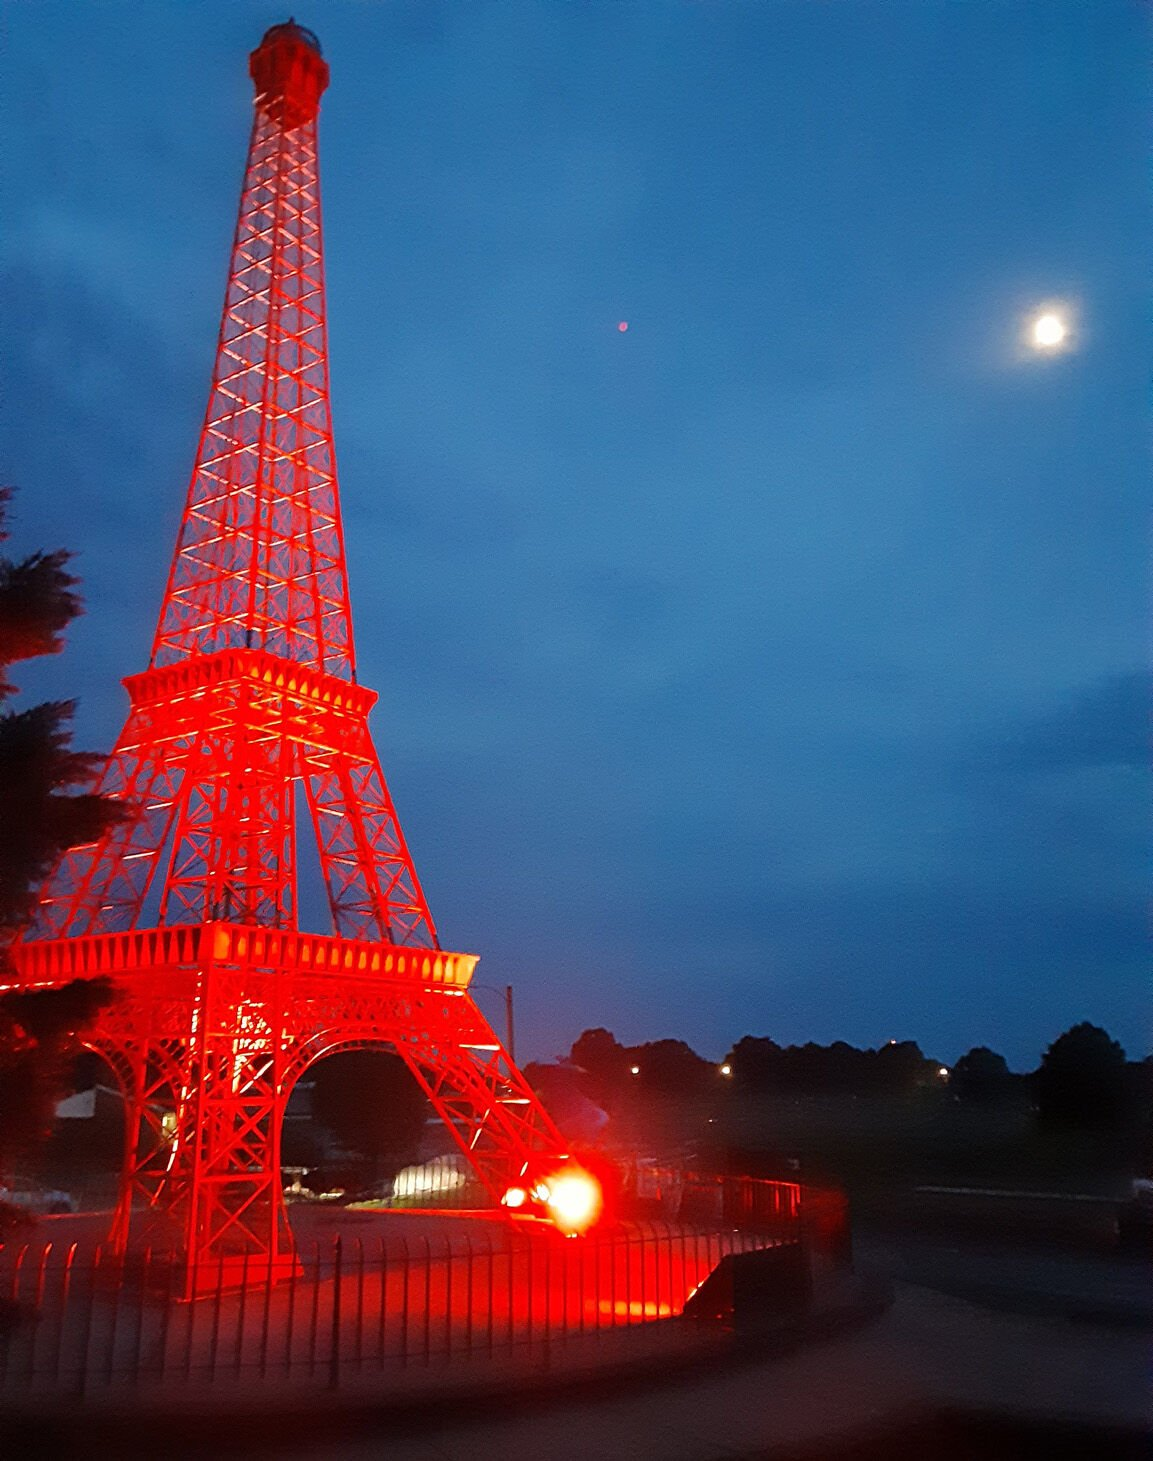 PARIS TN: Red Sand Project targets human trafficking